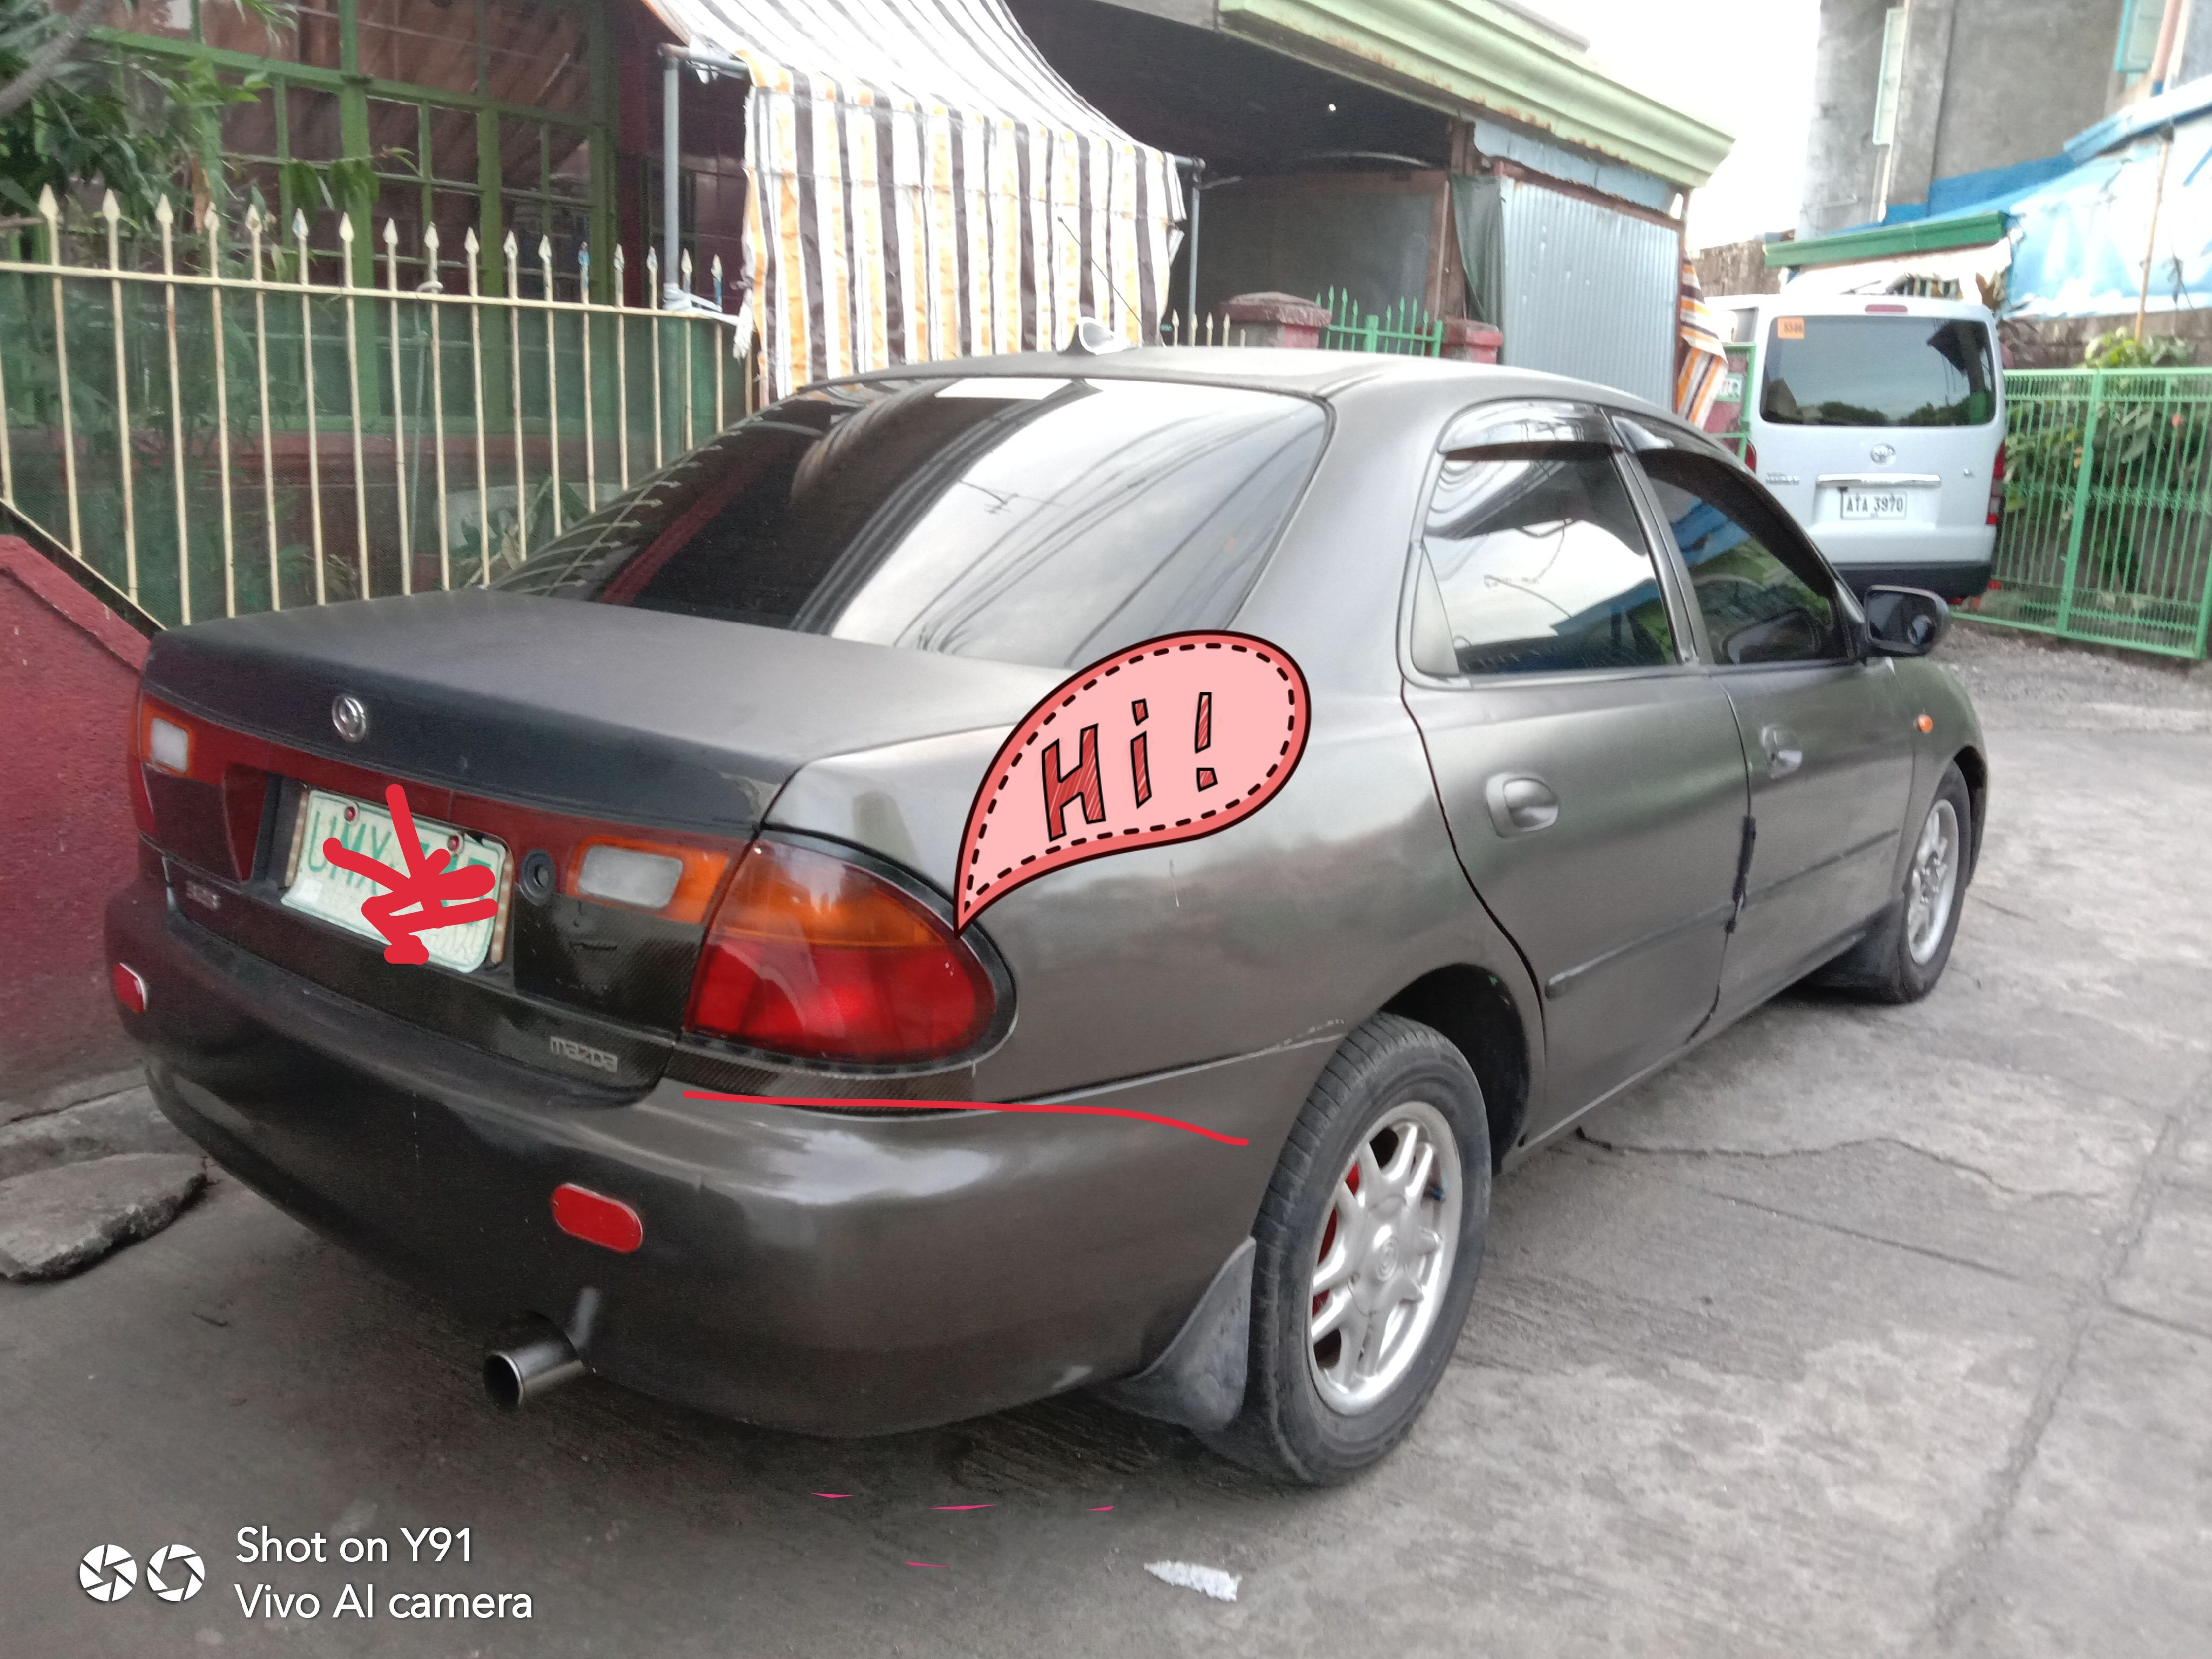 Car for sale Topshelf Buy online and sell with PH's 1